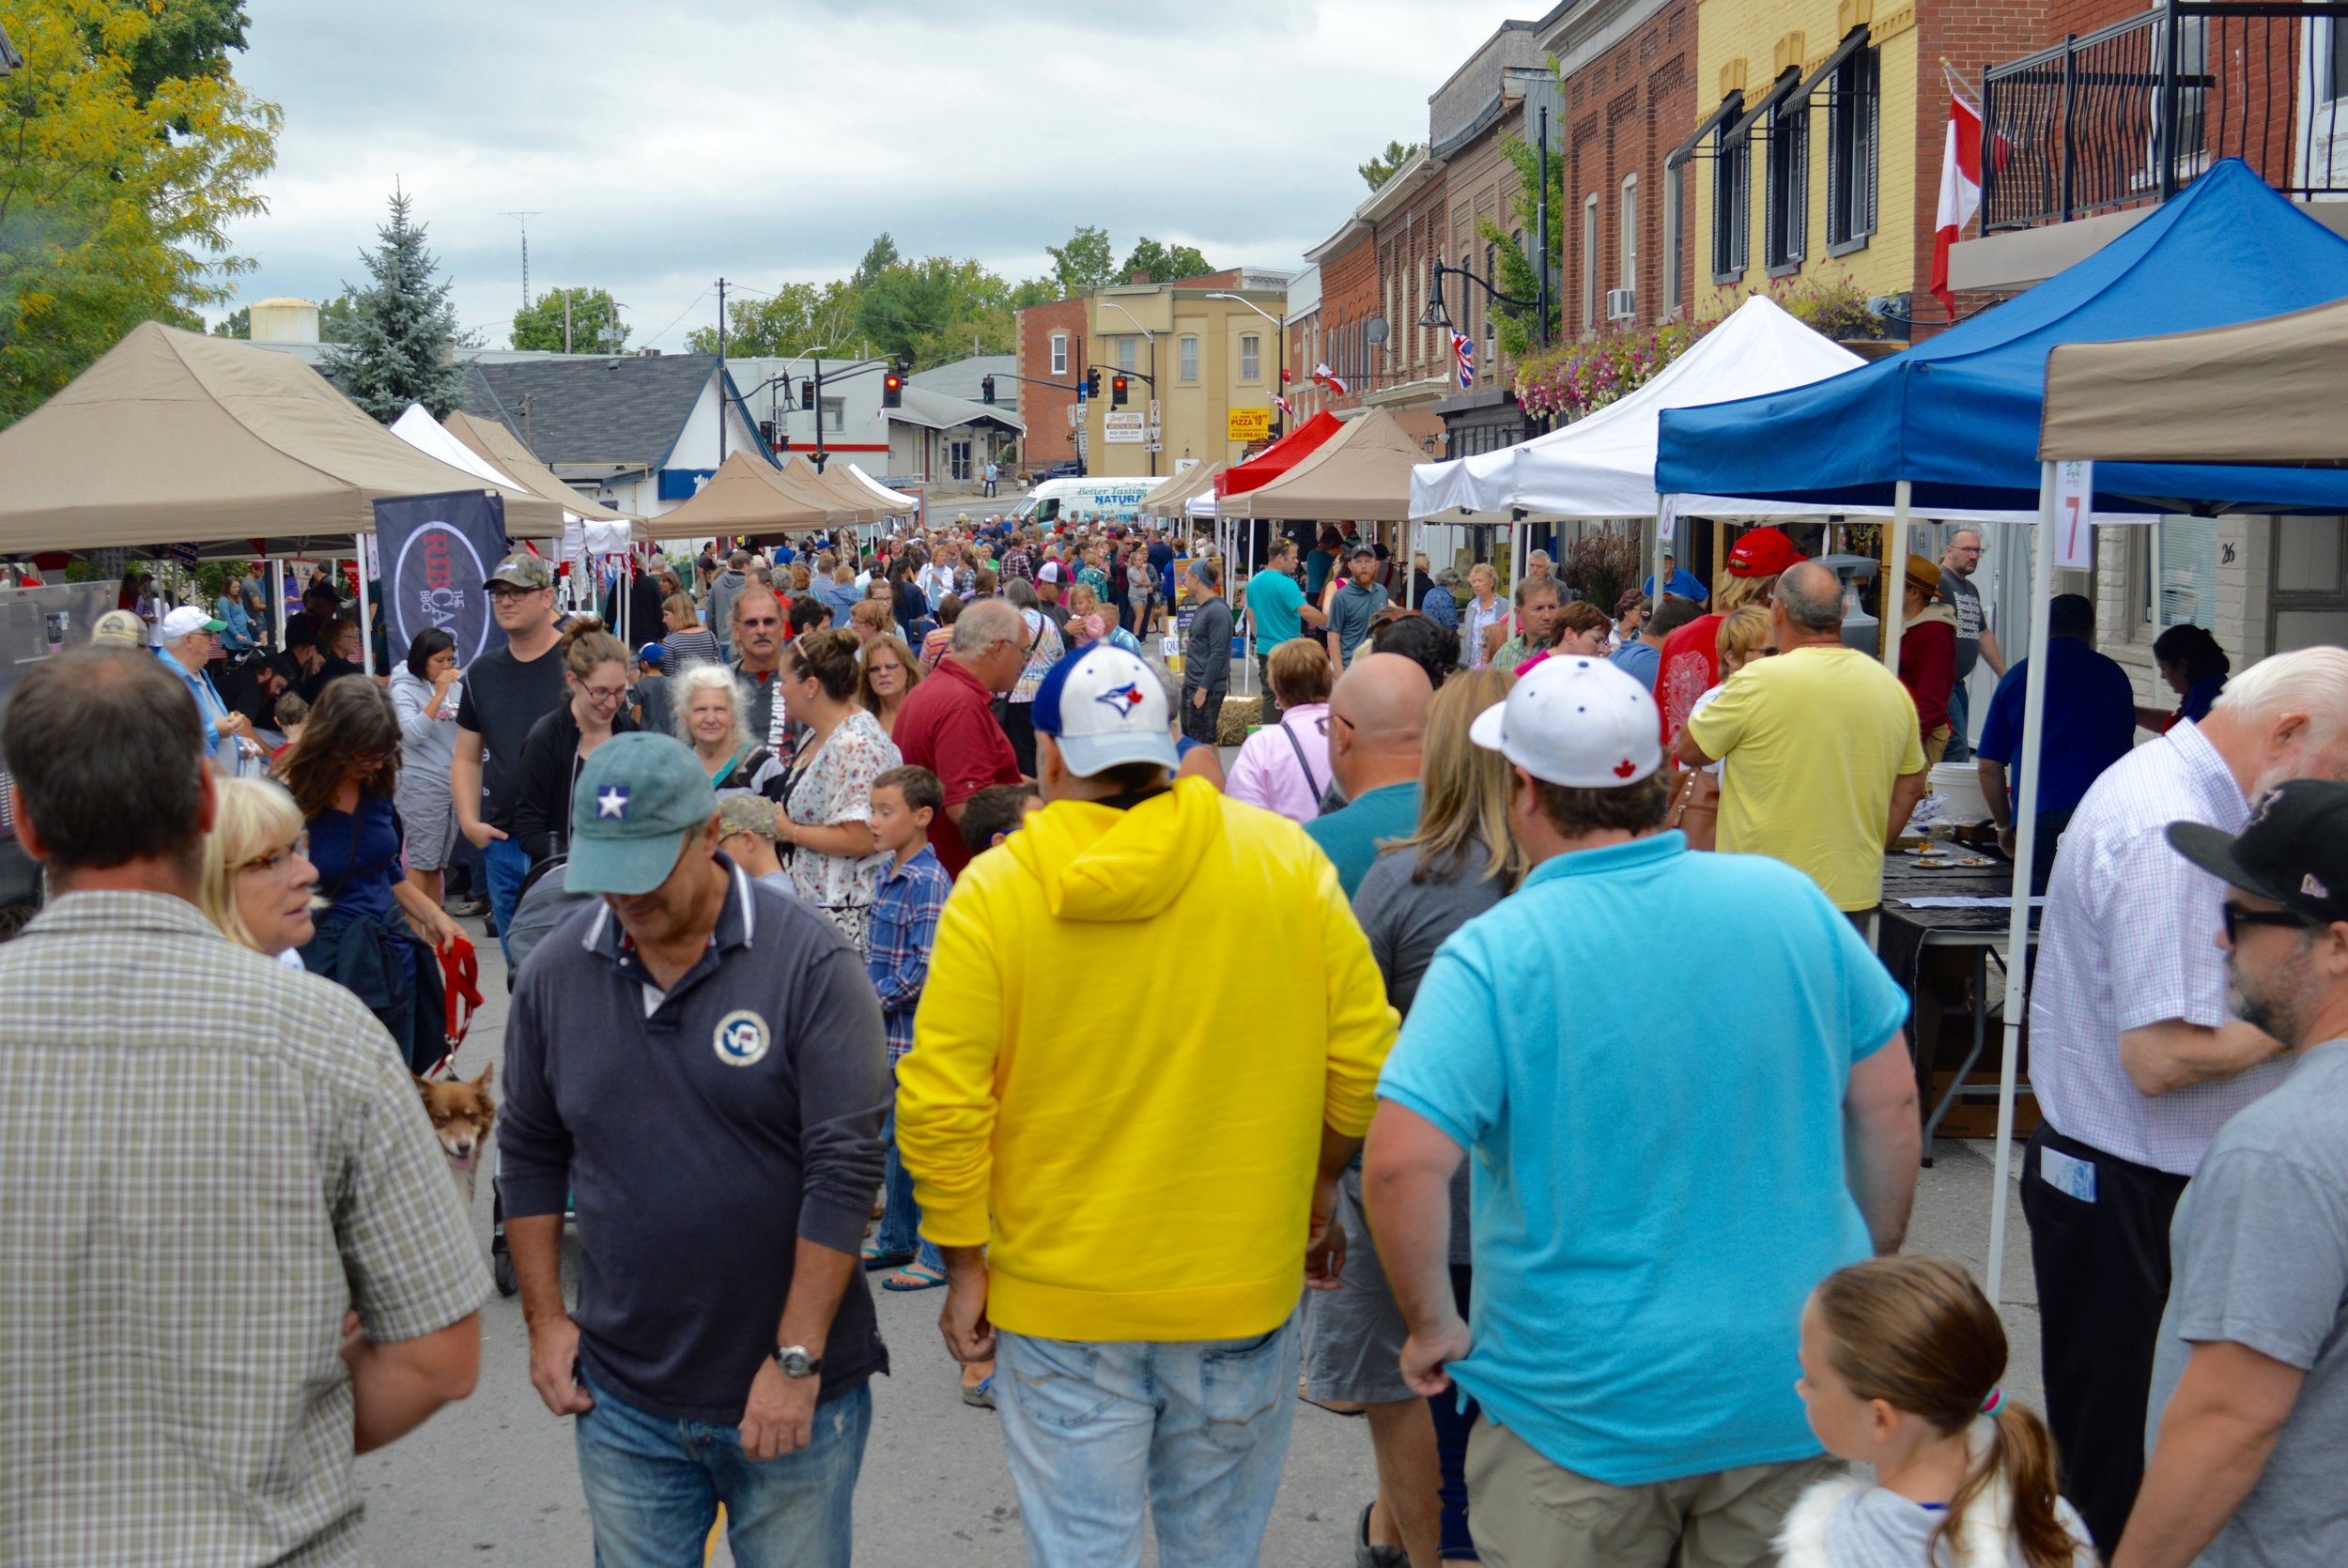 The scene on Mill Street in Stirling as well over 2,500 people took in the 8th annual Water Buffalo Festival. Vendors offered up reasonably priced food samples, all made from water buffalo products. The event was organized by the local Lions and Rotary Clubs and a fundraising success.